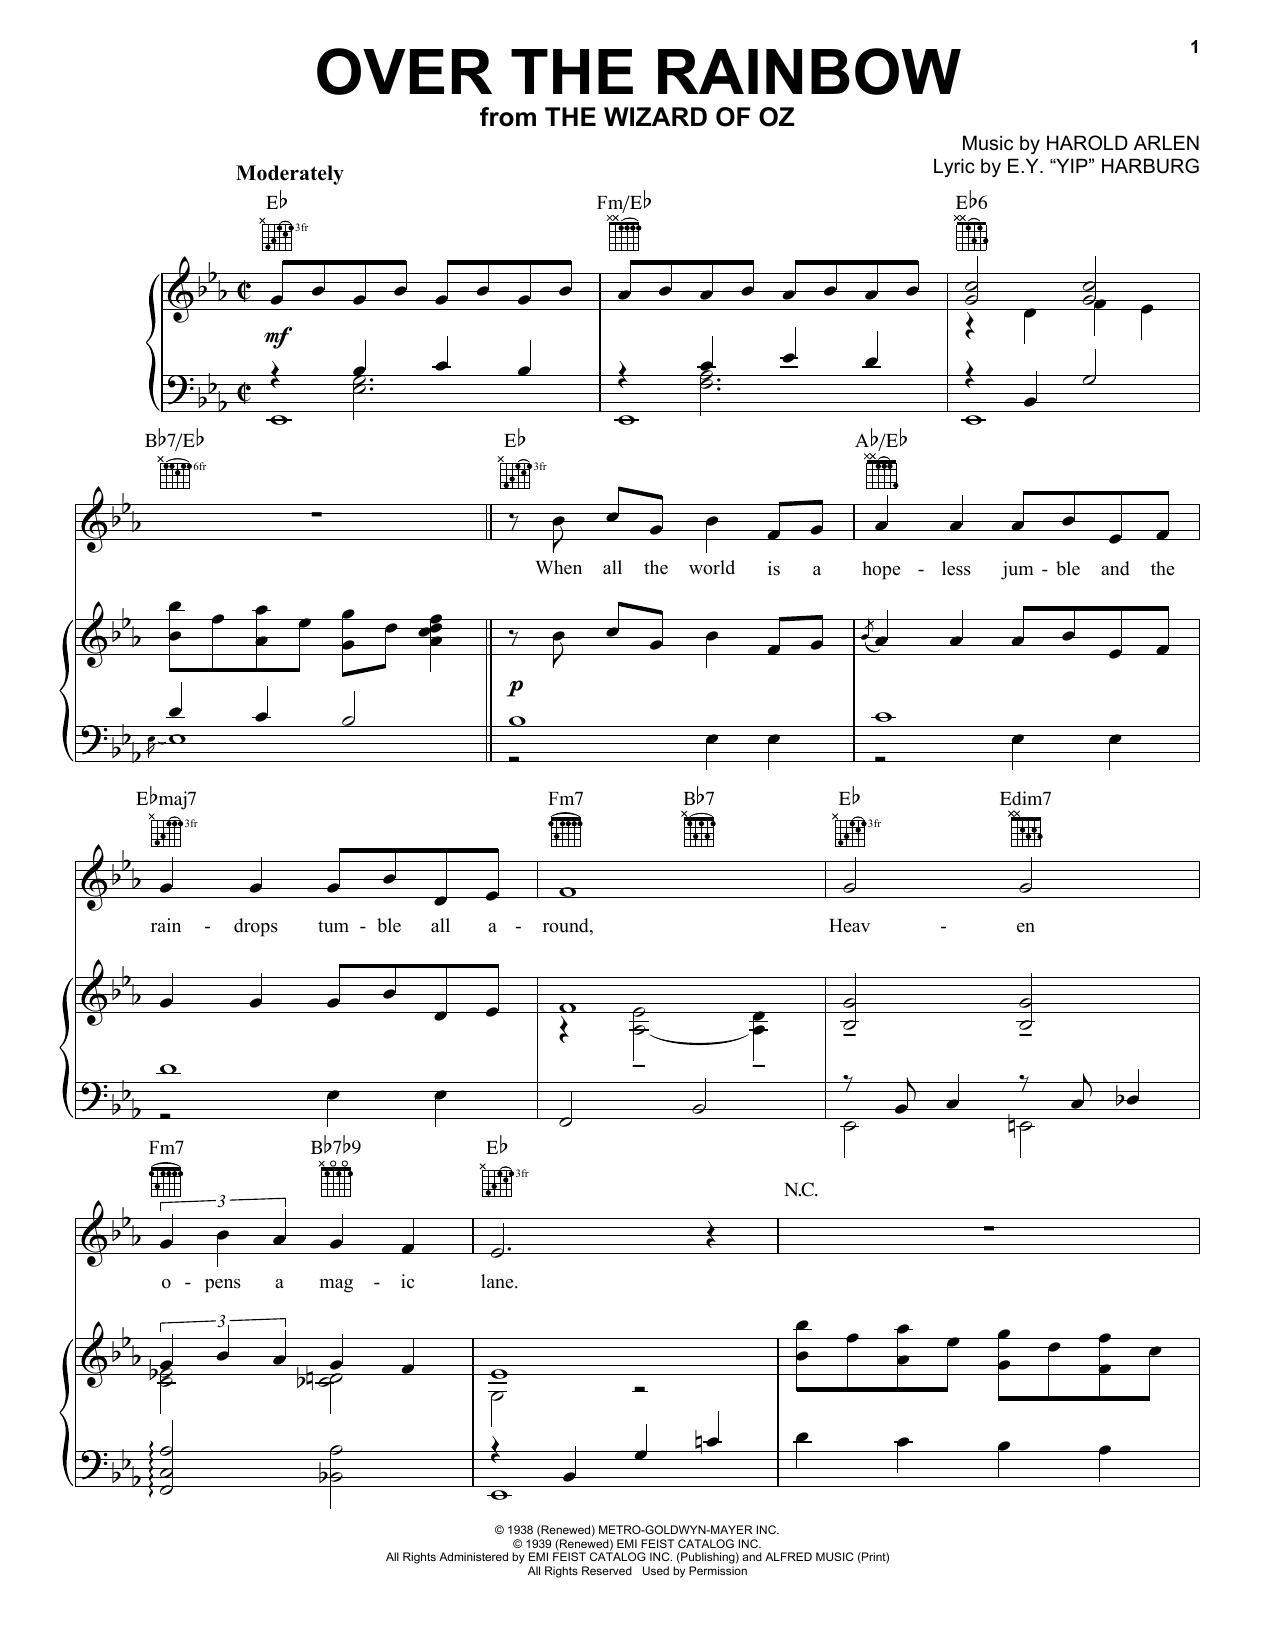 Over the rainbow sheet music direct sheet preview hexwebz Image collections